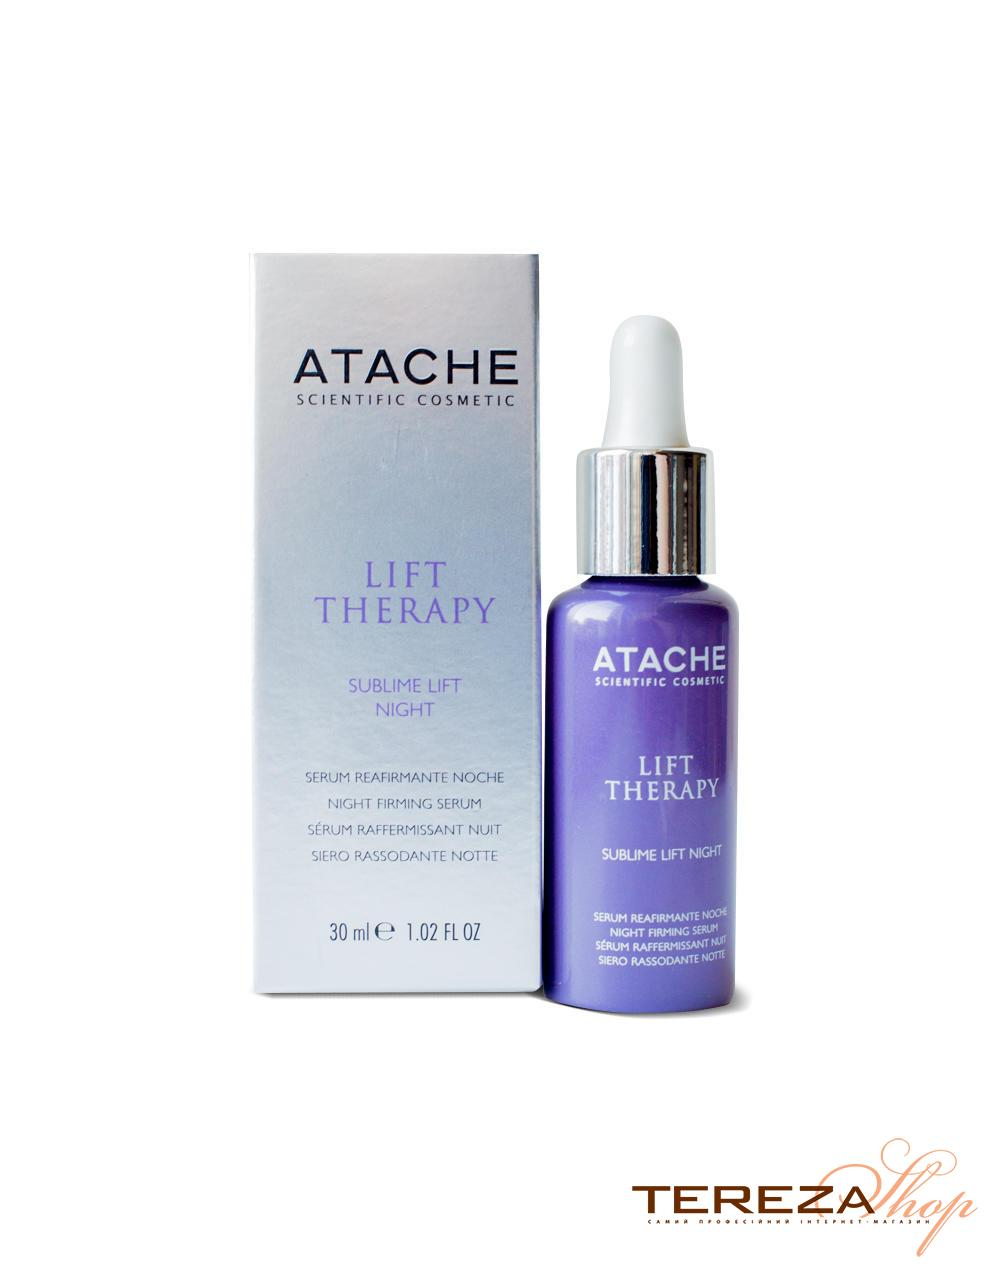 LIFT THERAPY SUBLIME LIFT NEGHT ATACHE | Tereza Shop